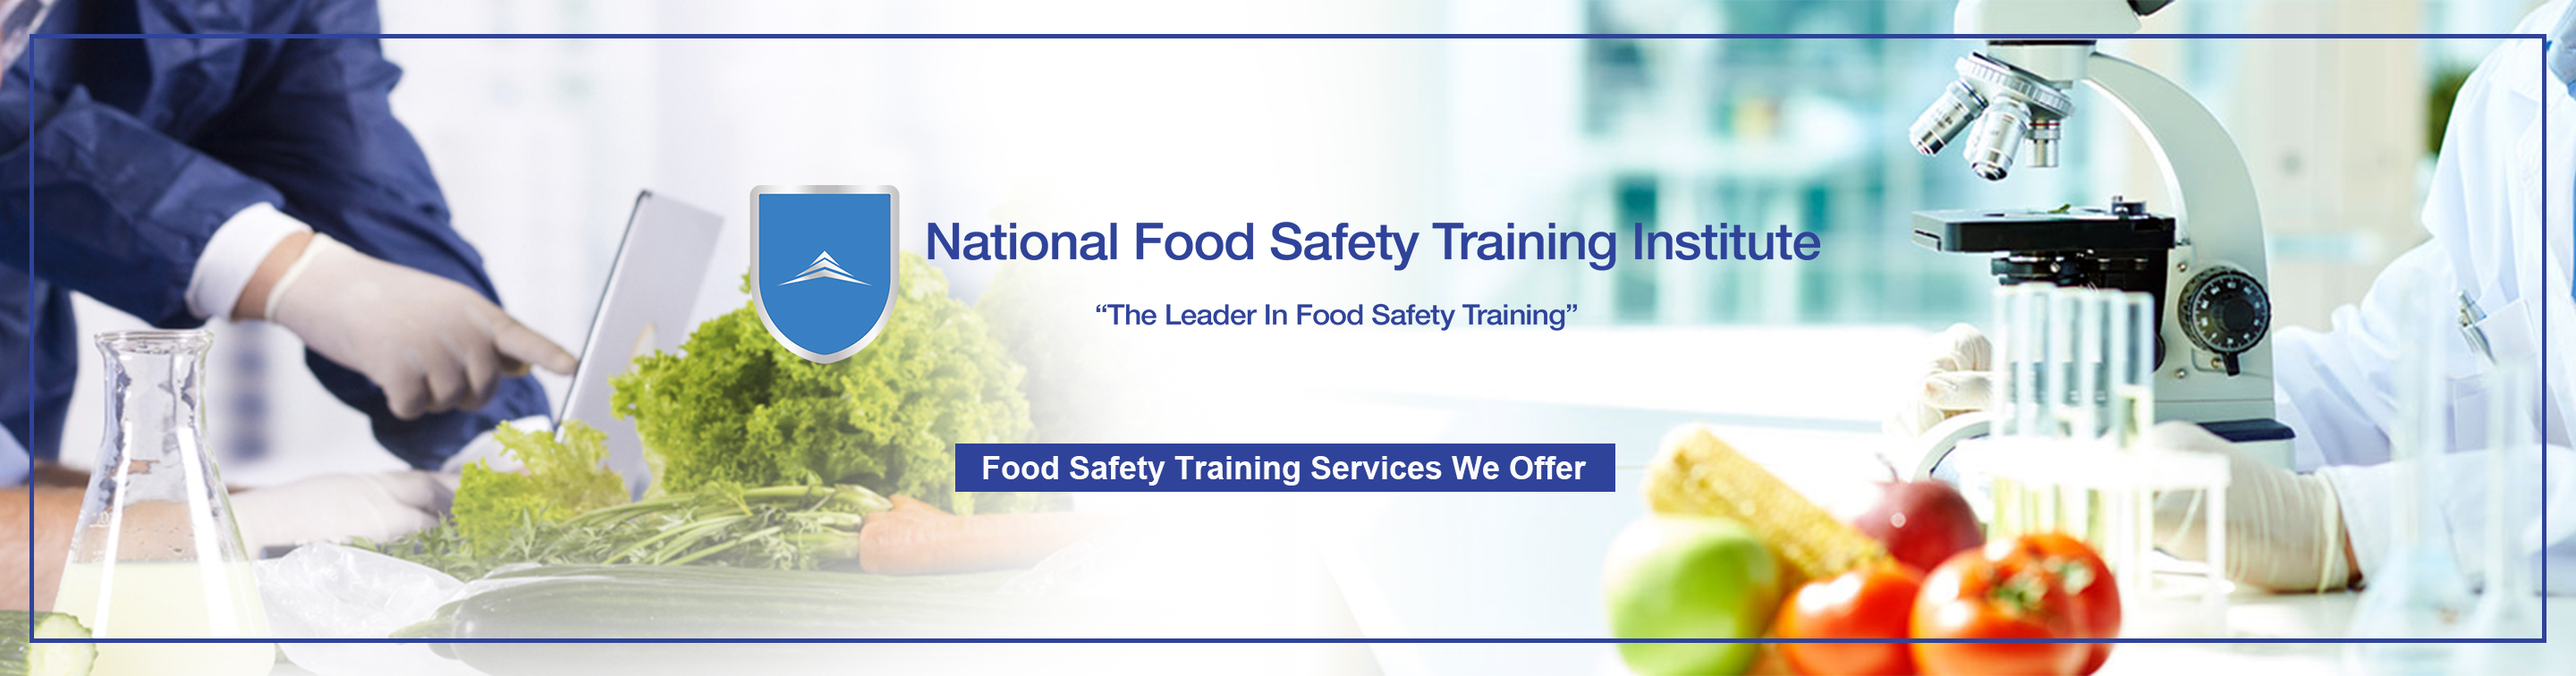 National Food Safety Training Institute reviews | Educational Services at 825 Nicollet Mall - Minneapolis MN